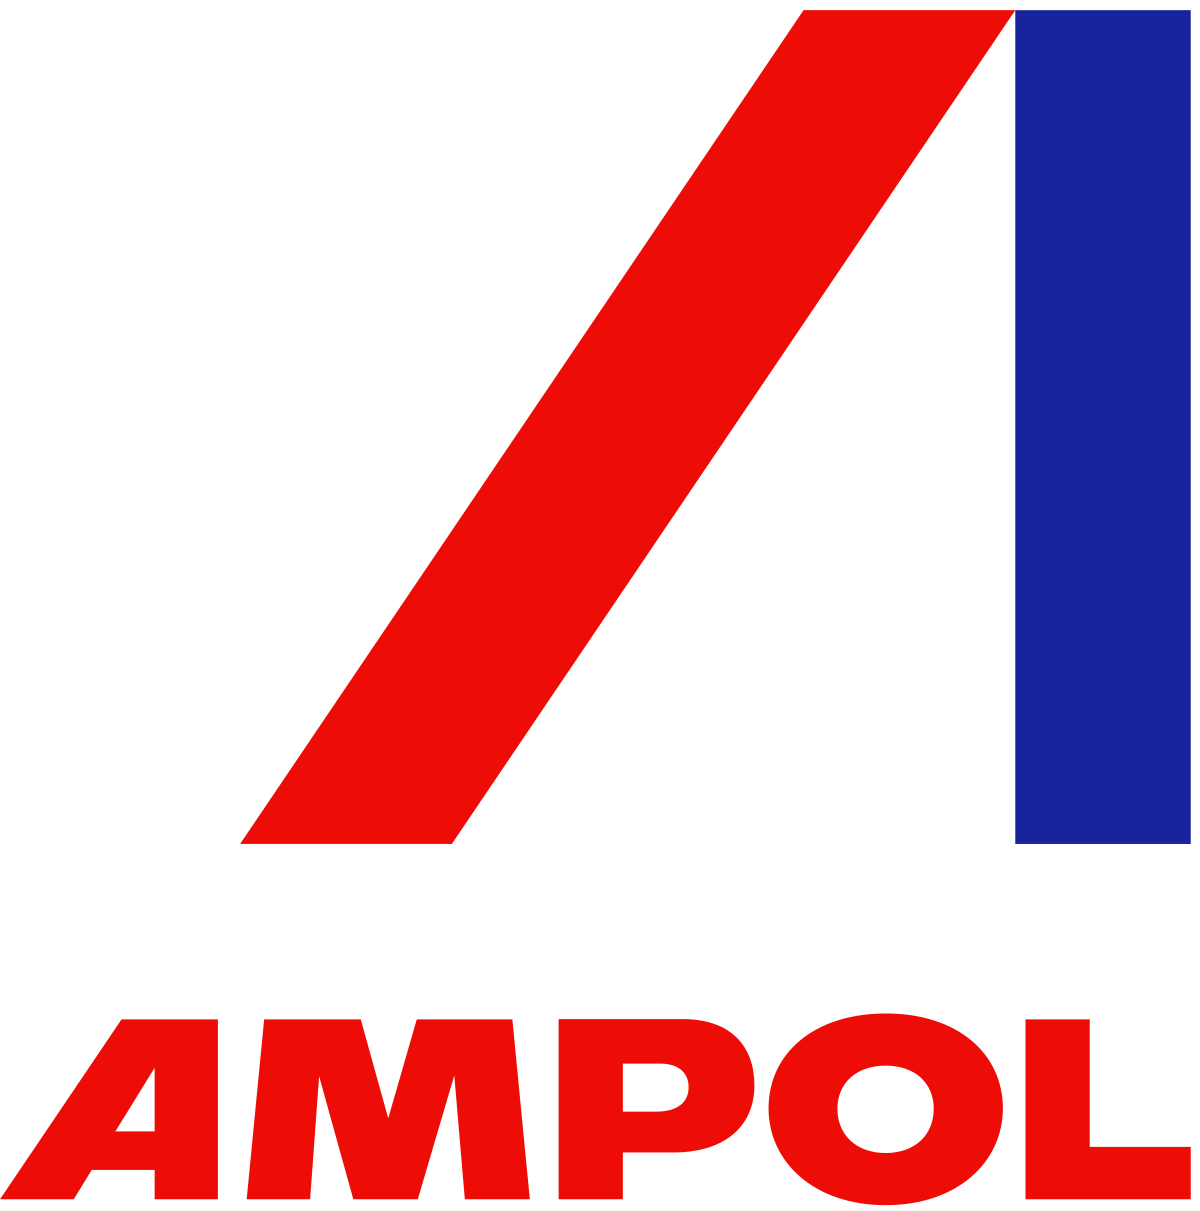 Ampol Limited